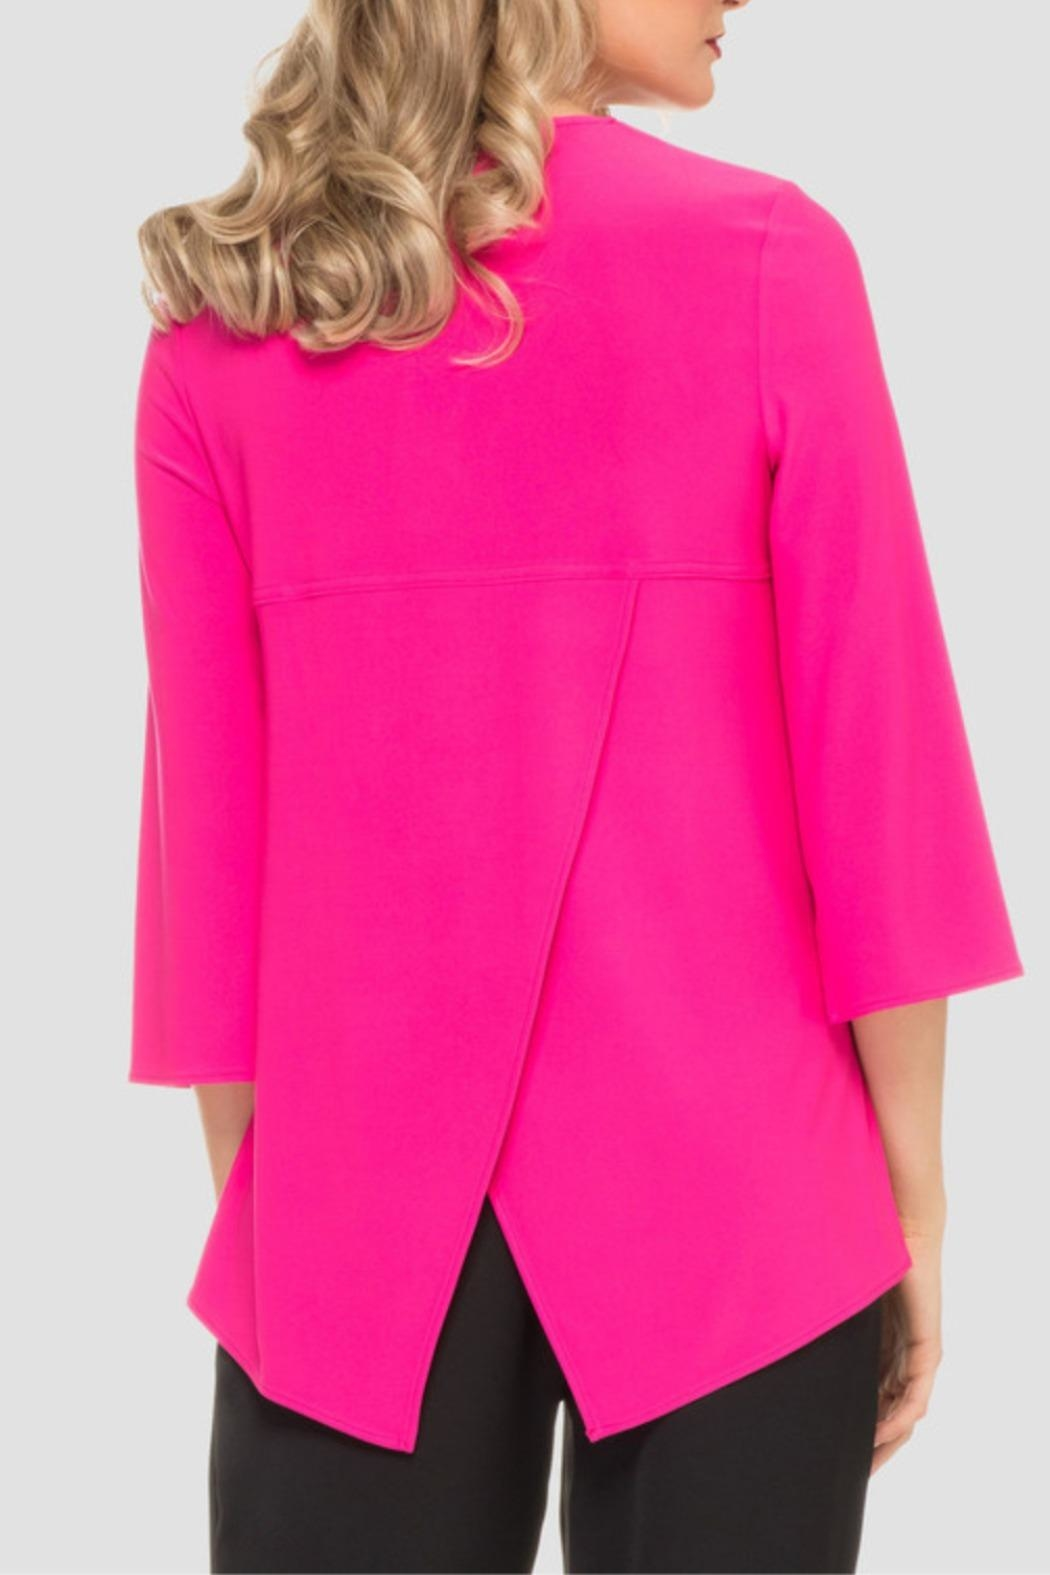 Joseph Ribkoff Hot Pink Top - Side Cropped Image